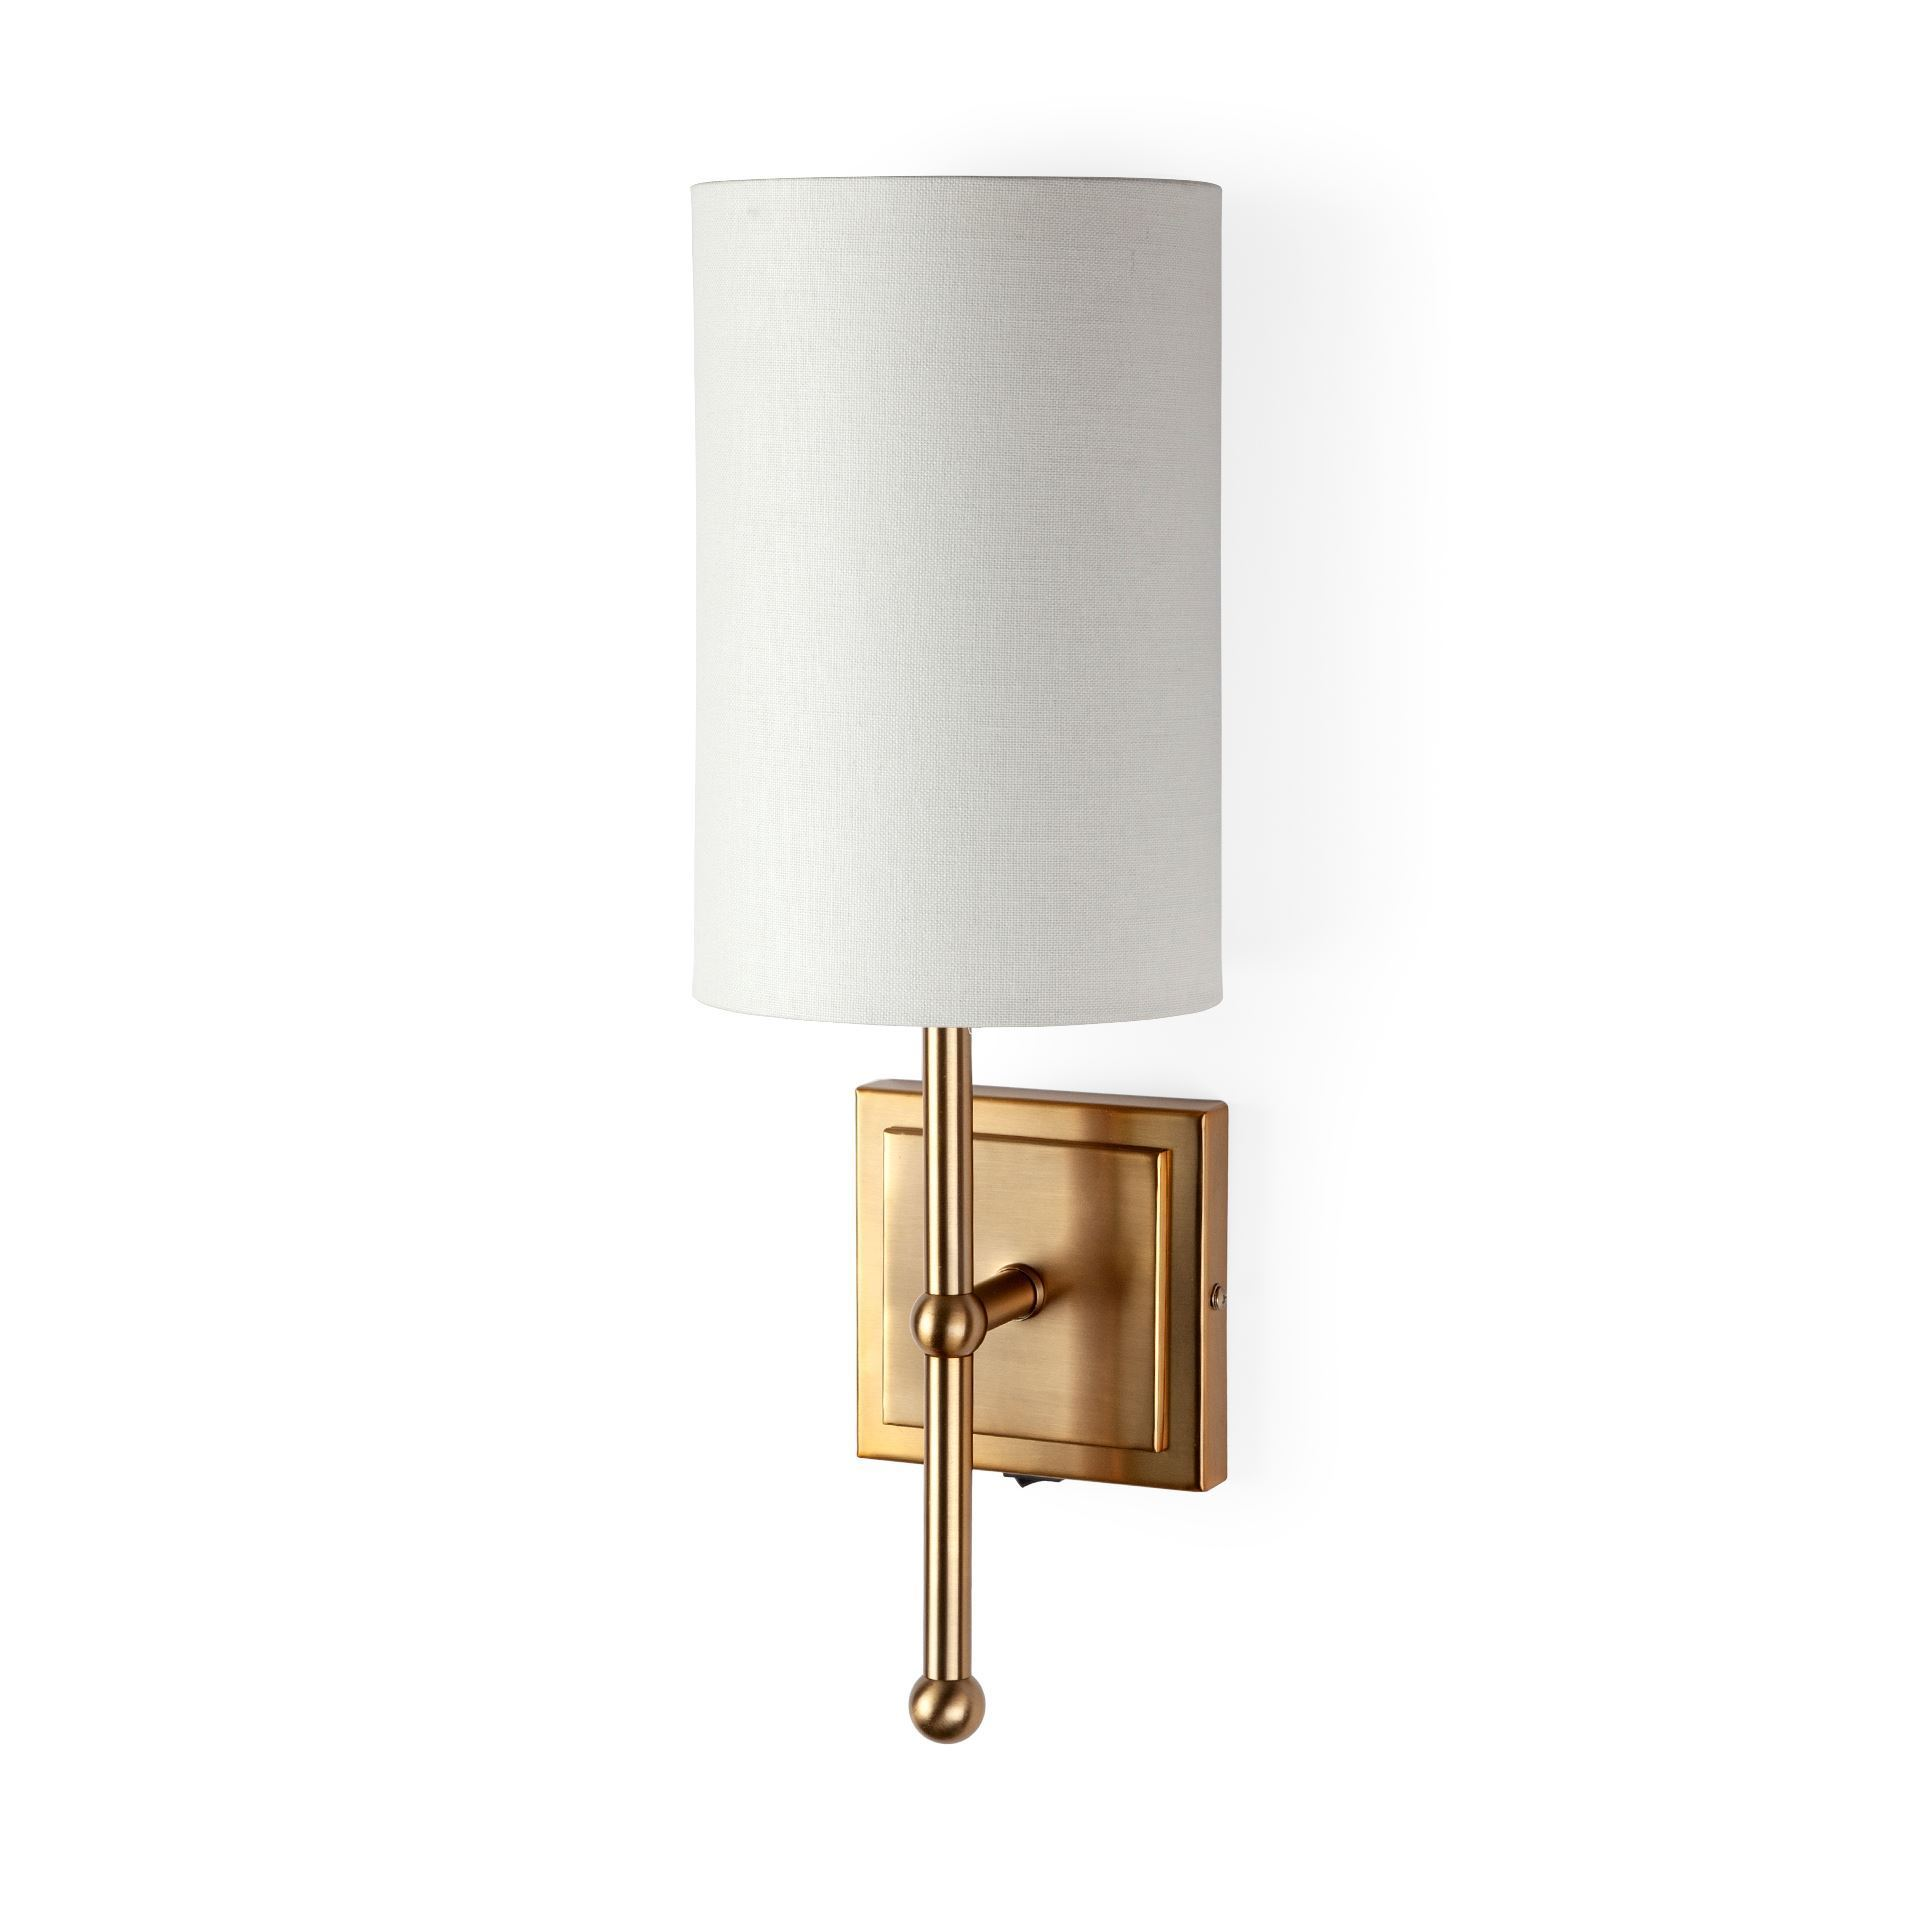 Bourgeois Wall Sconce ~ Gold - Cece & Me - Home and Gifts